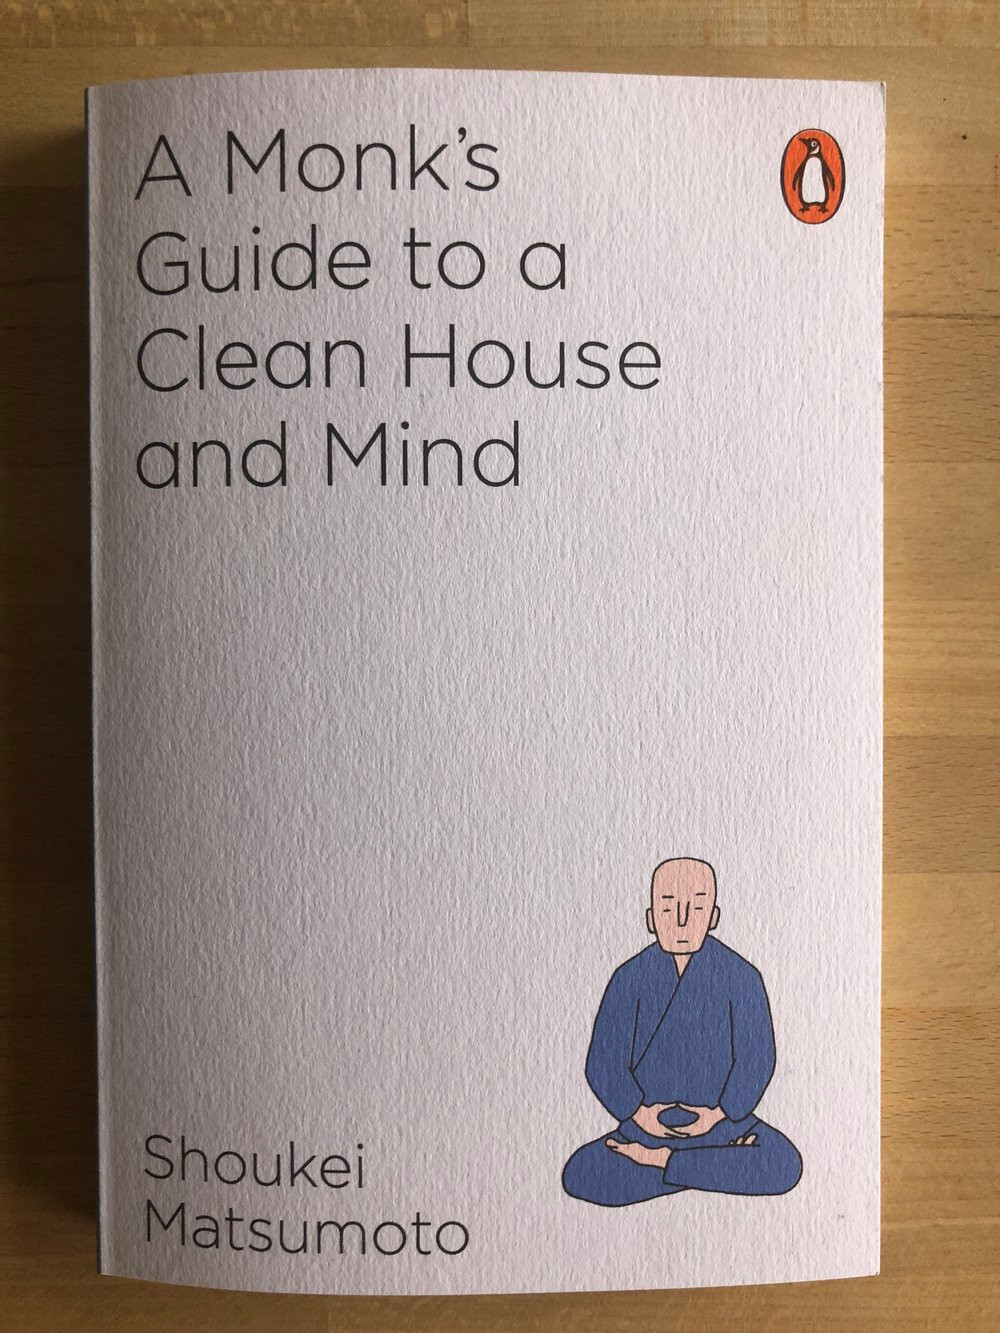 En Place - A Monk's Guide to a Clean House and Mind